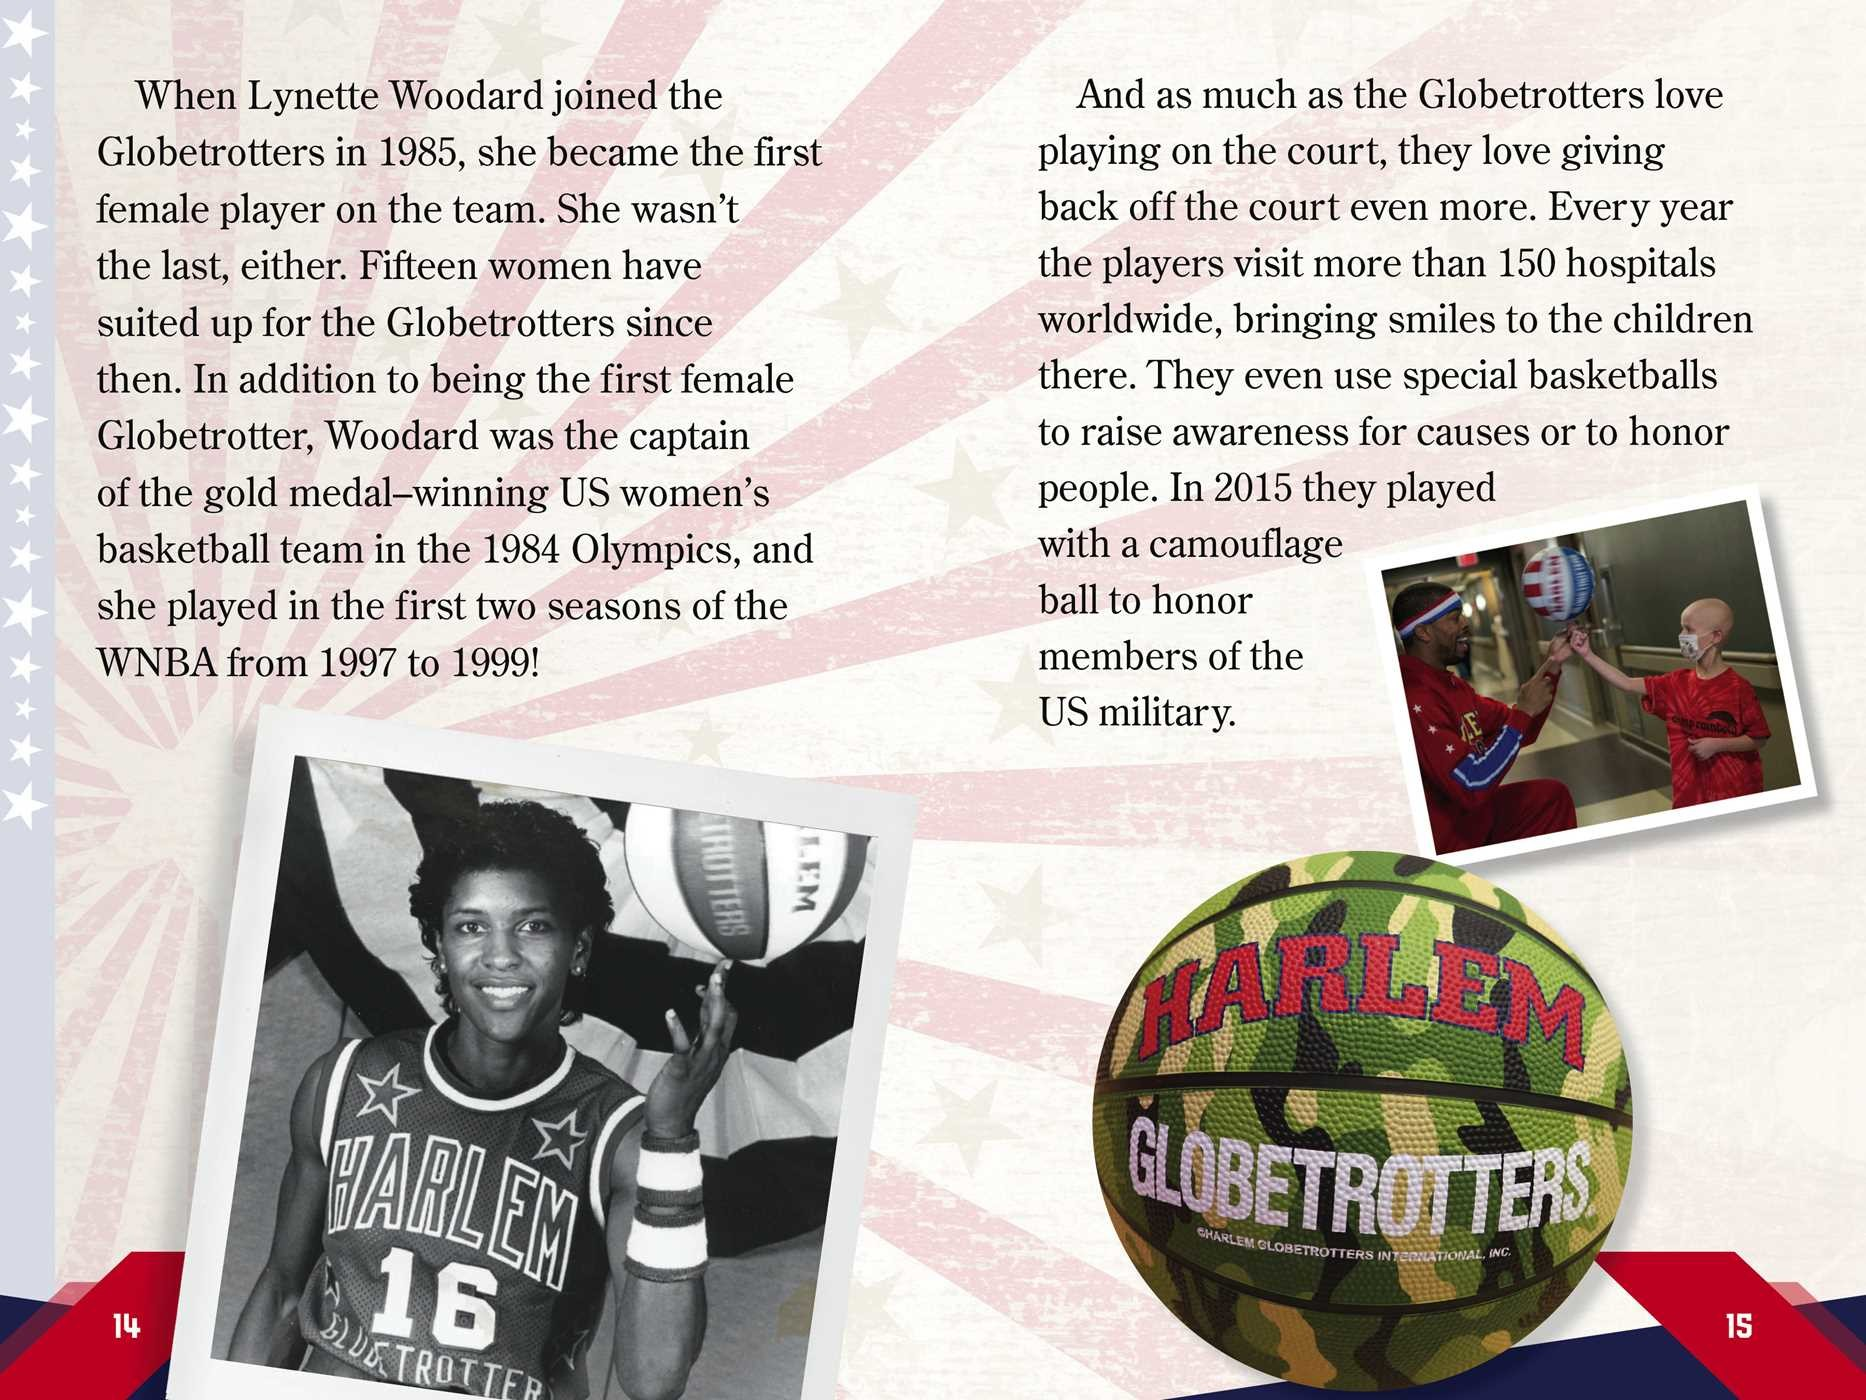 Here come the harlem globetrotters 9781481487450.in05